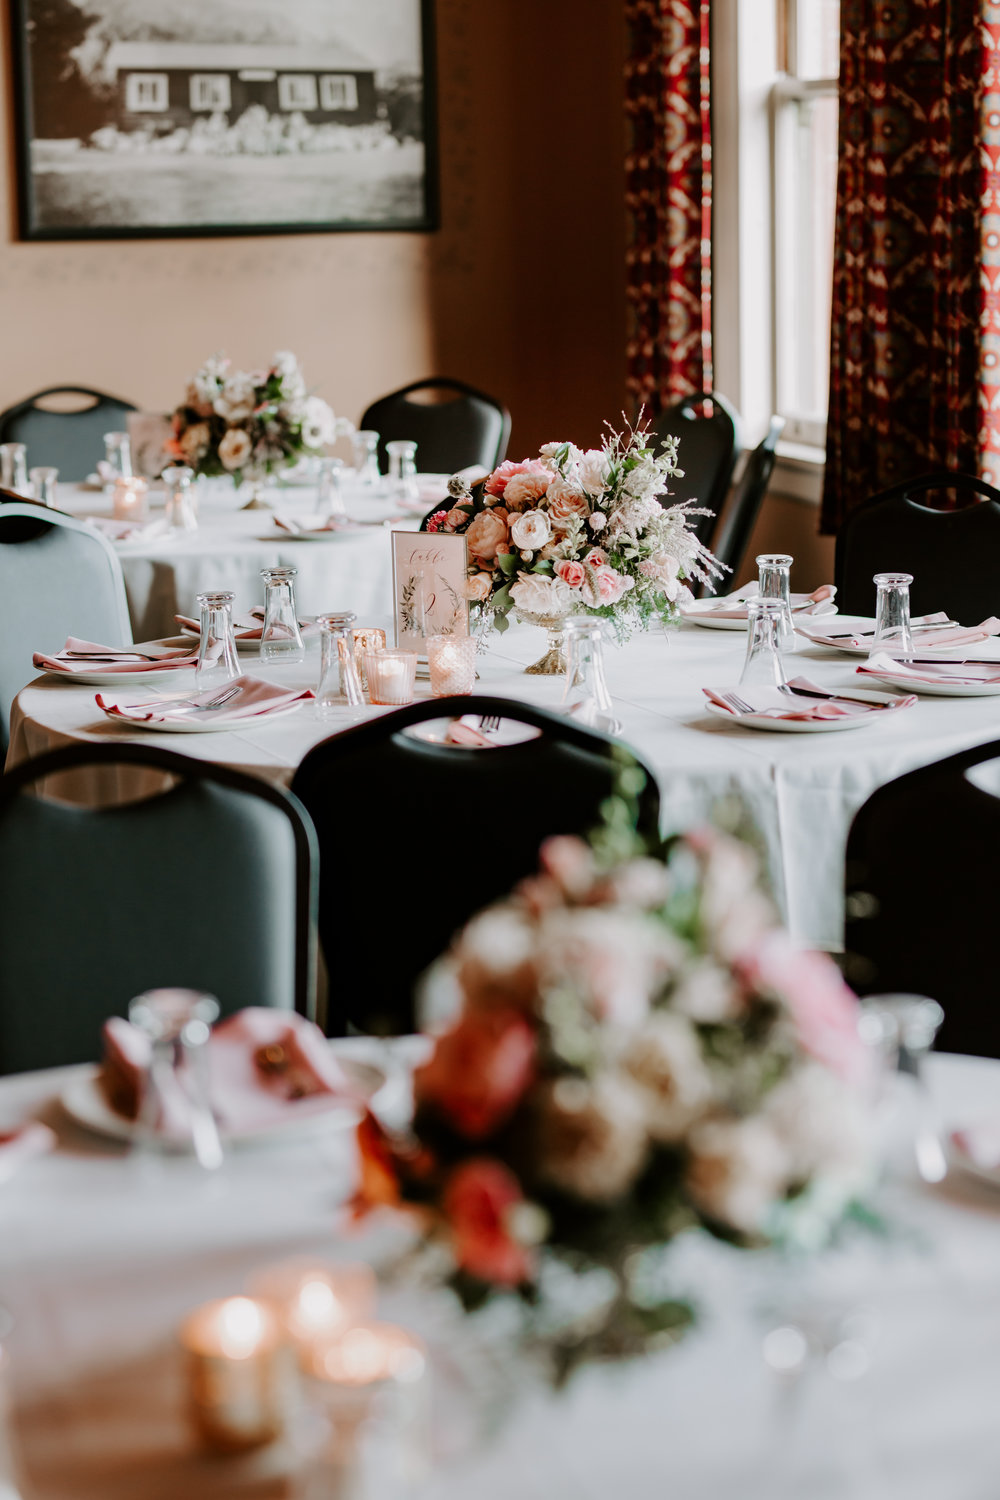 Rustic Bloom Photography |  McMenamins Grand Lodge | Reception Table Inspiration